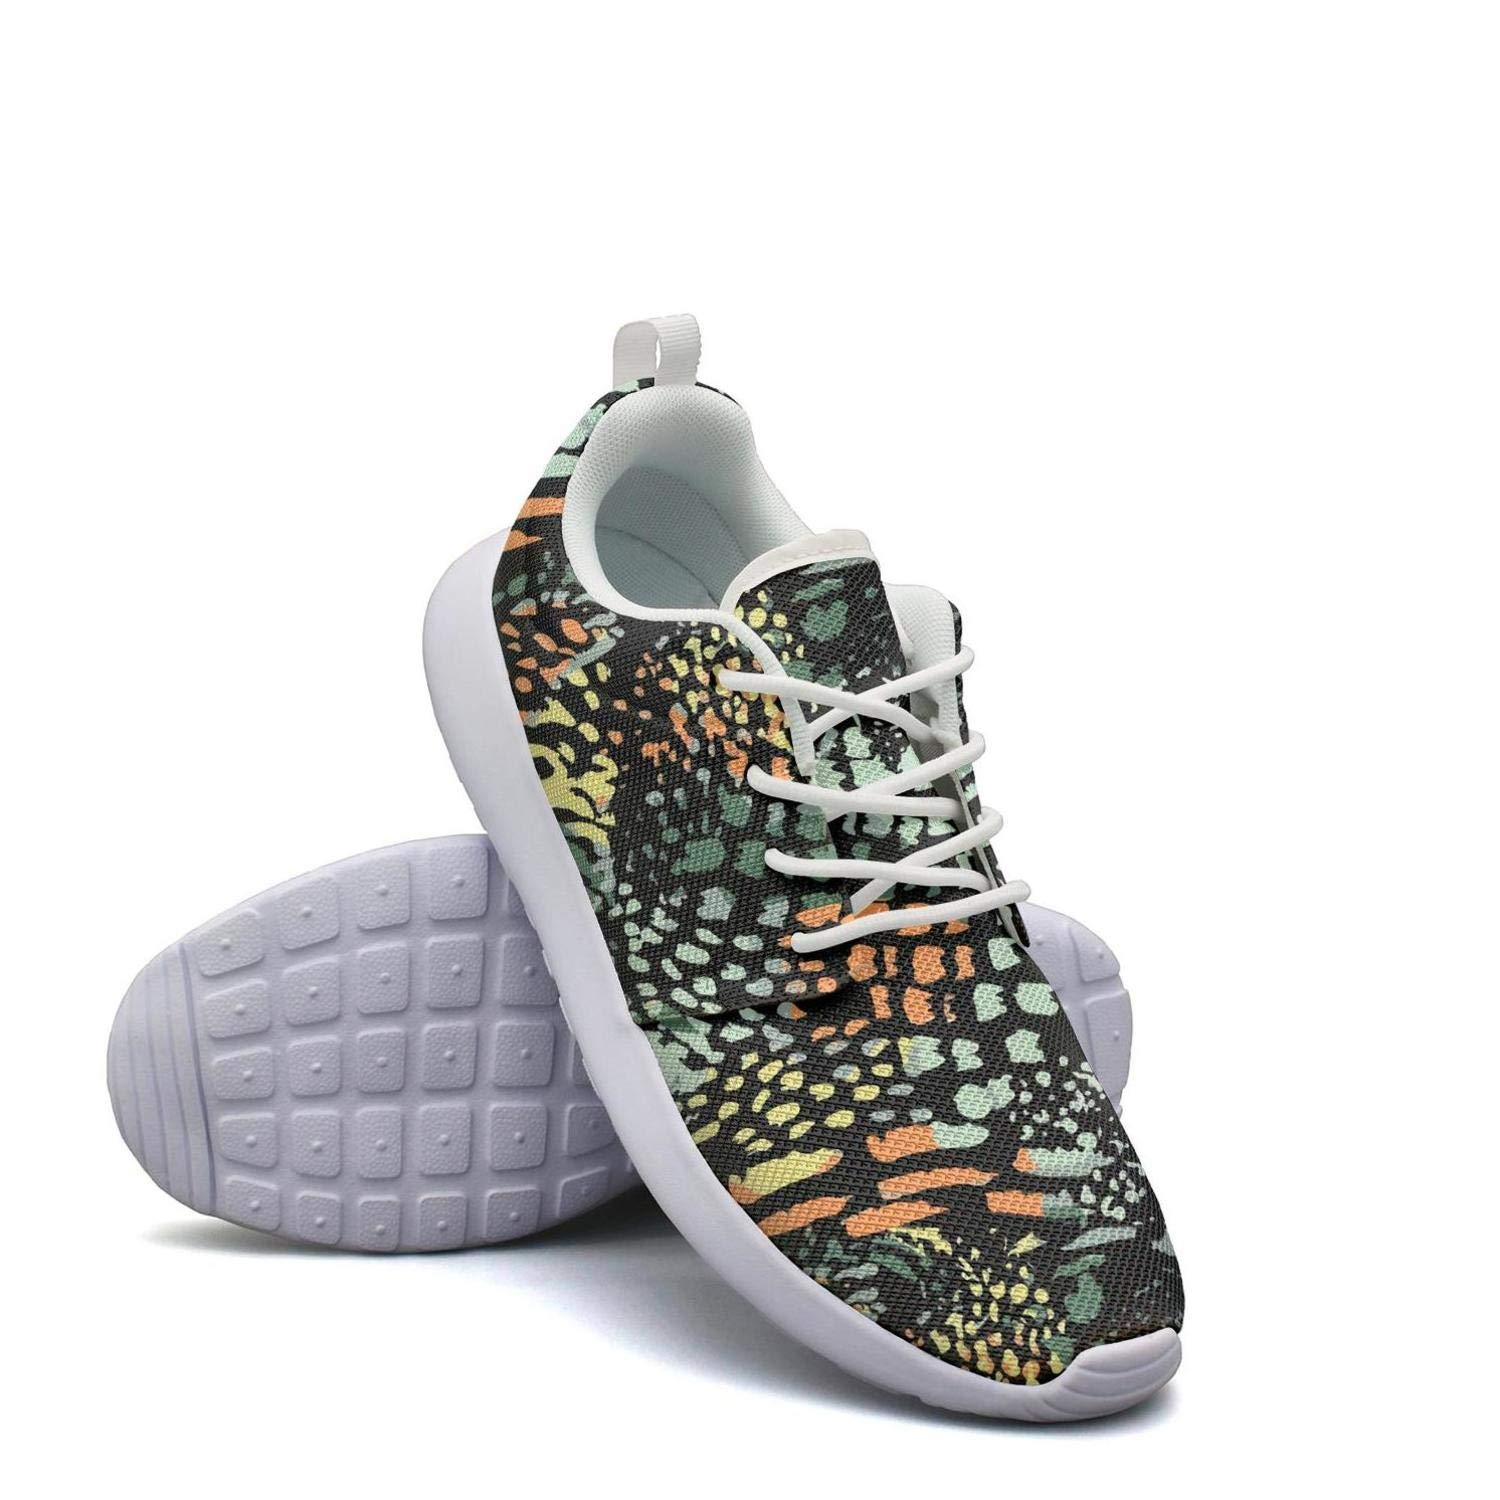 ERSER Camouflage Flower Army Running Shoes Wide Women